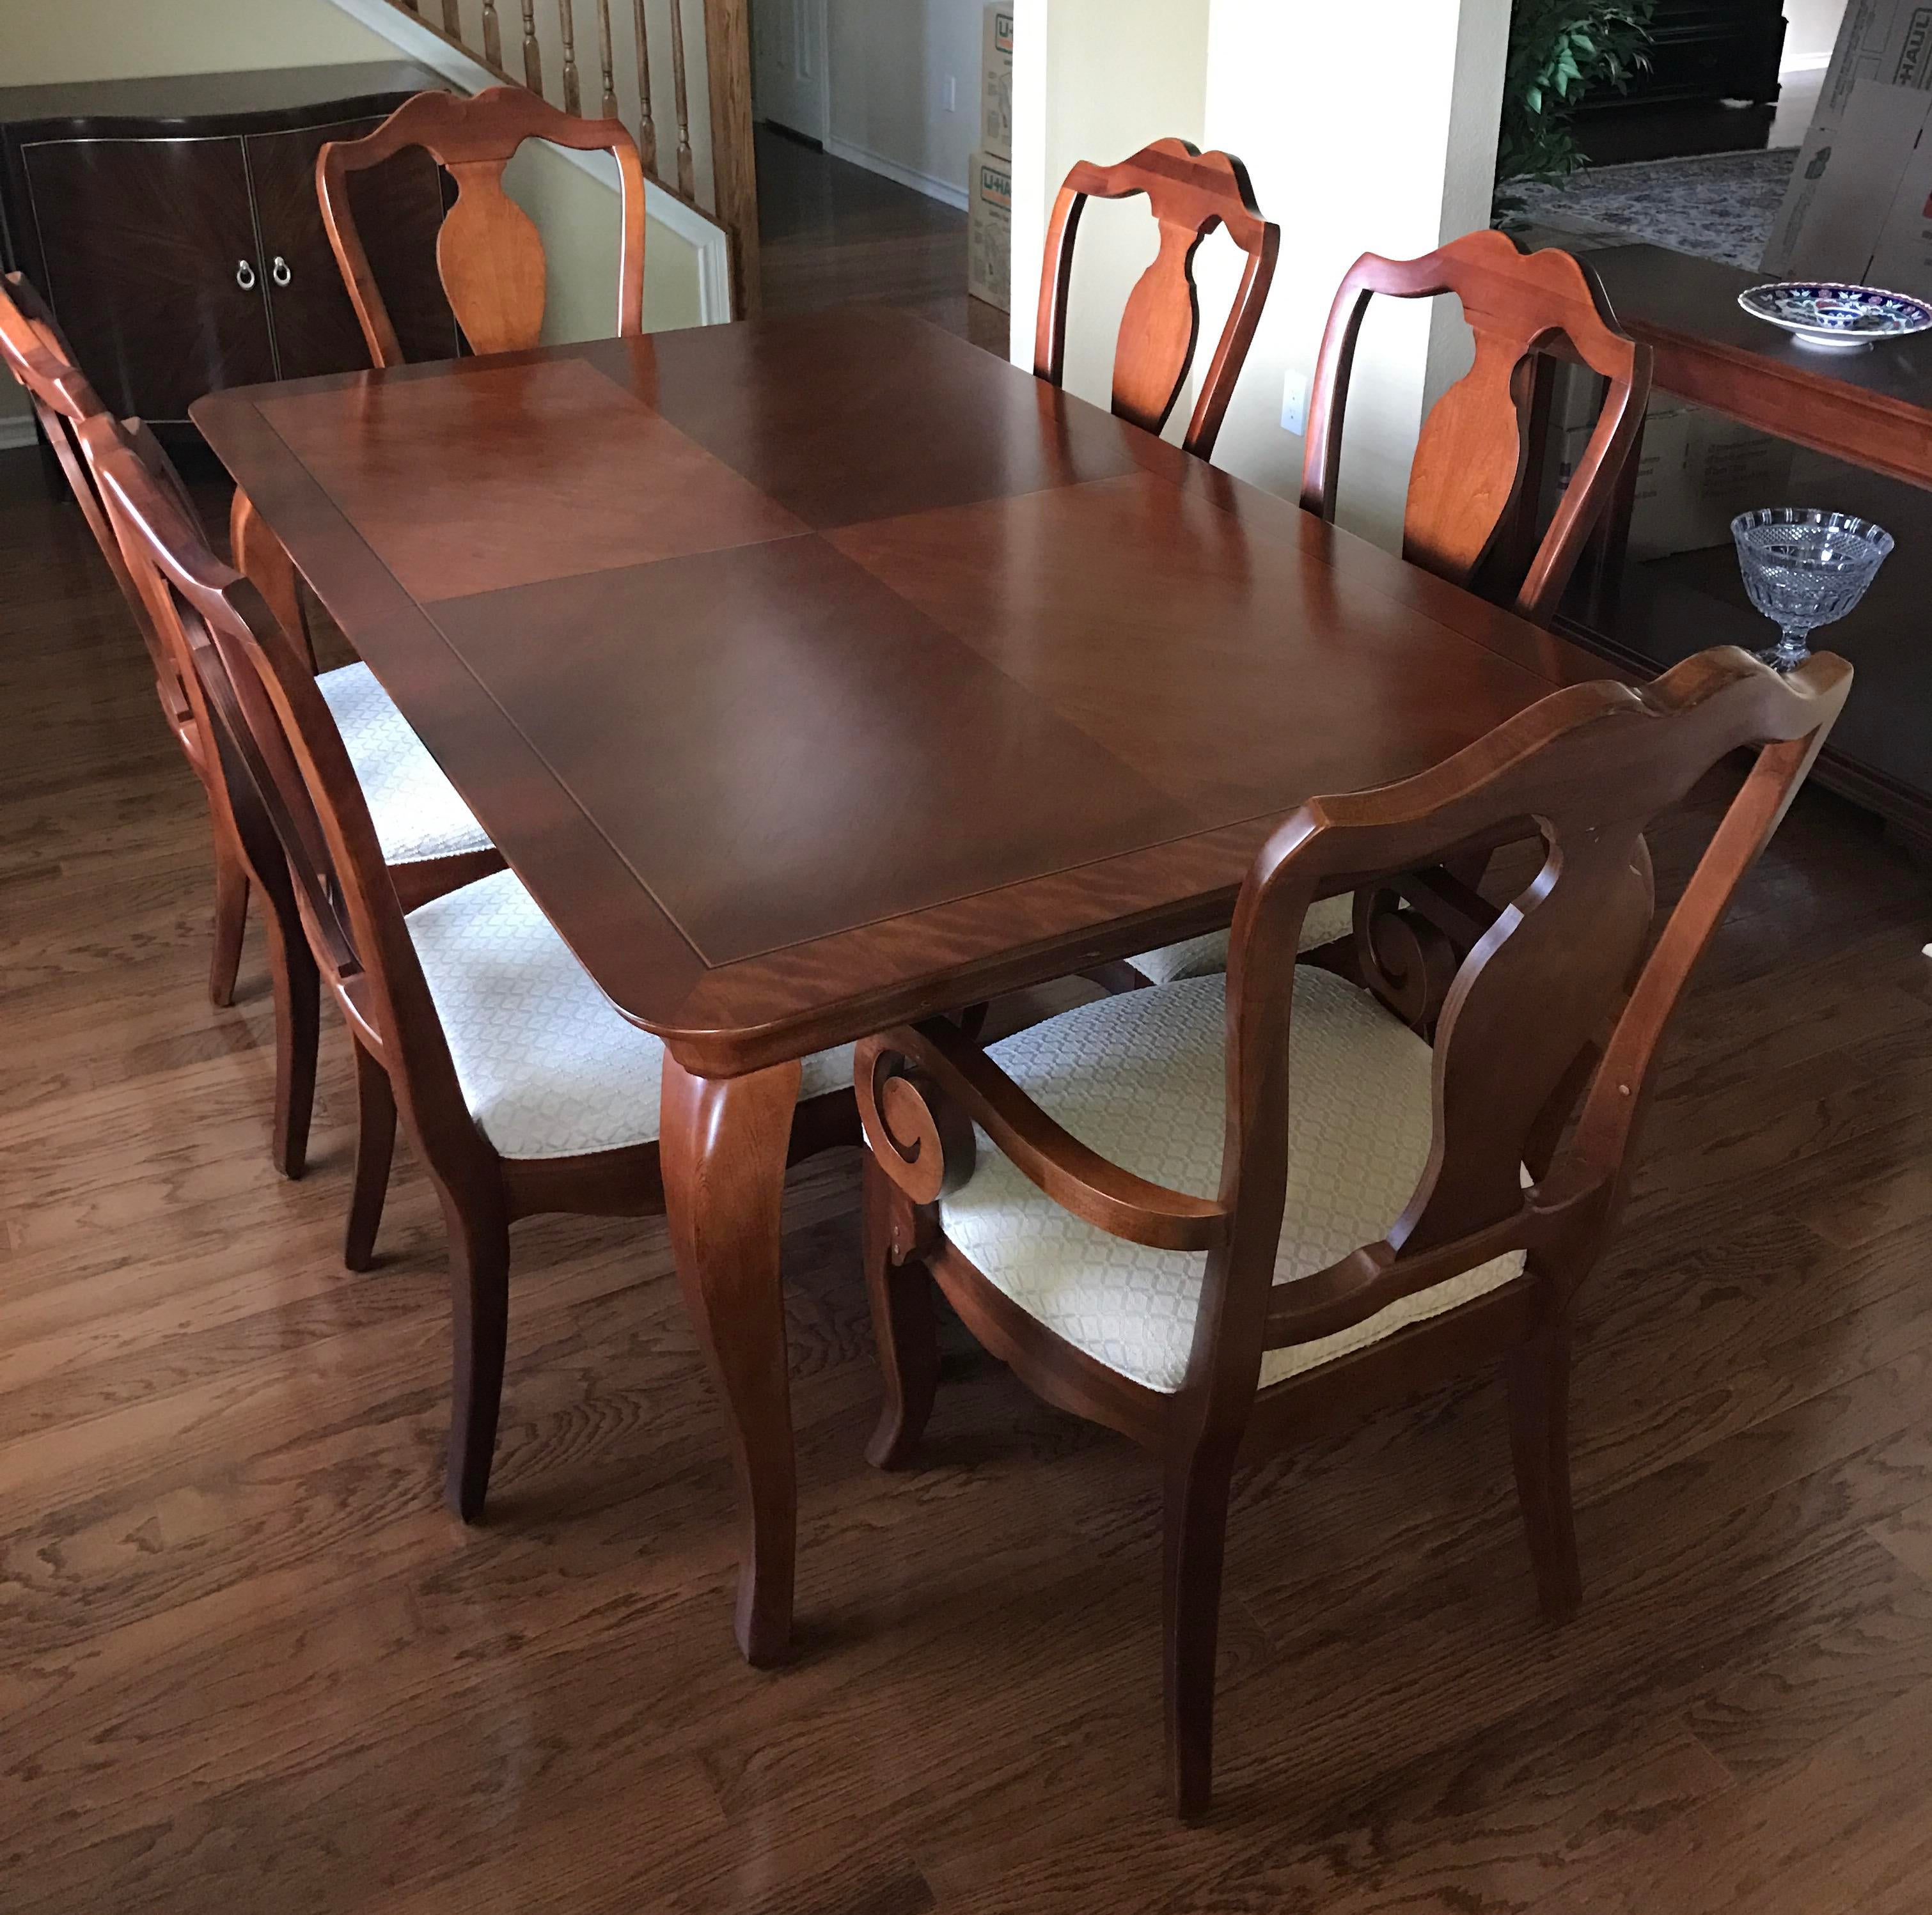 thomasville dining table chairs w leaves chairish rh chairish com thomasville dining table pads thomasville dining table and chairs